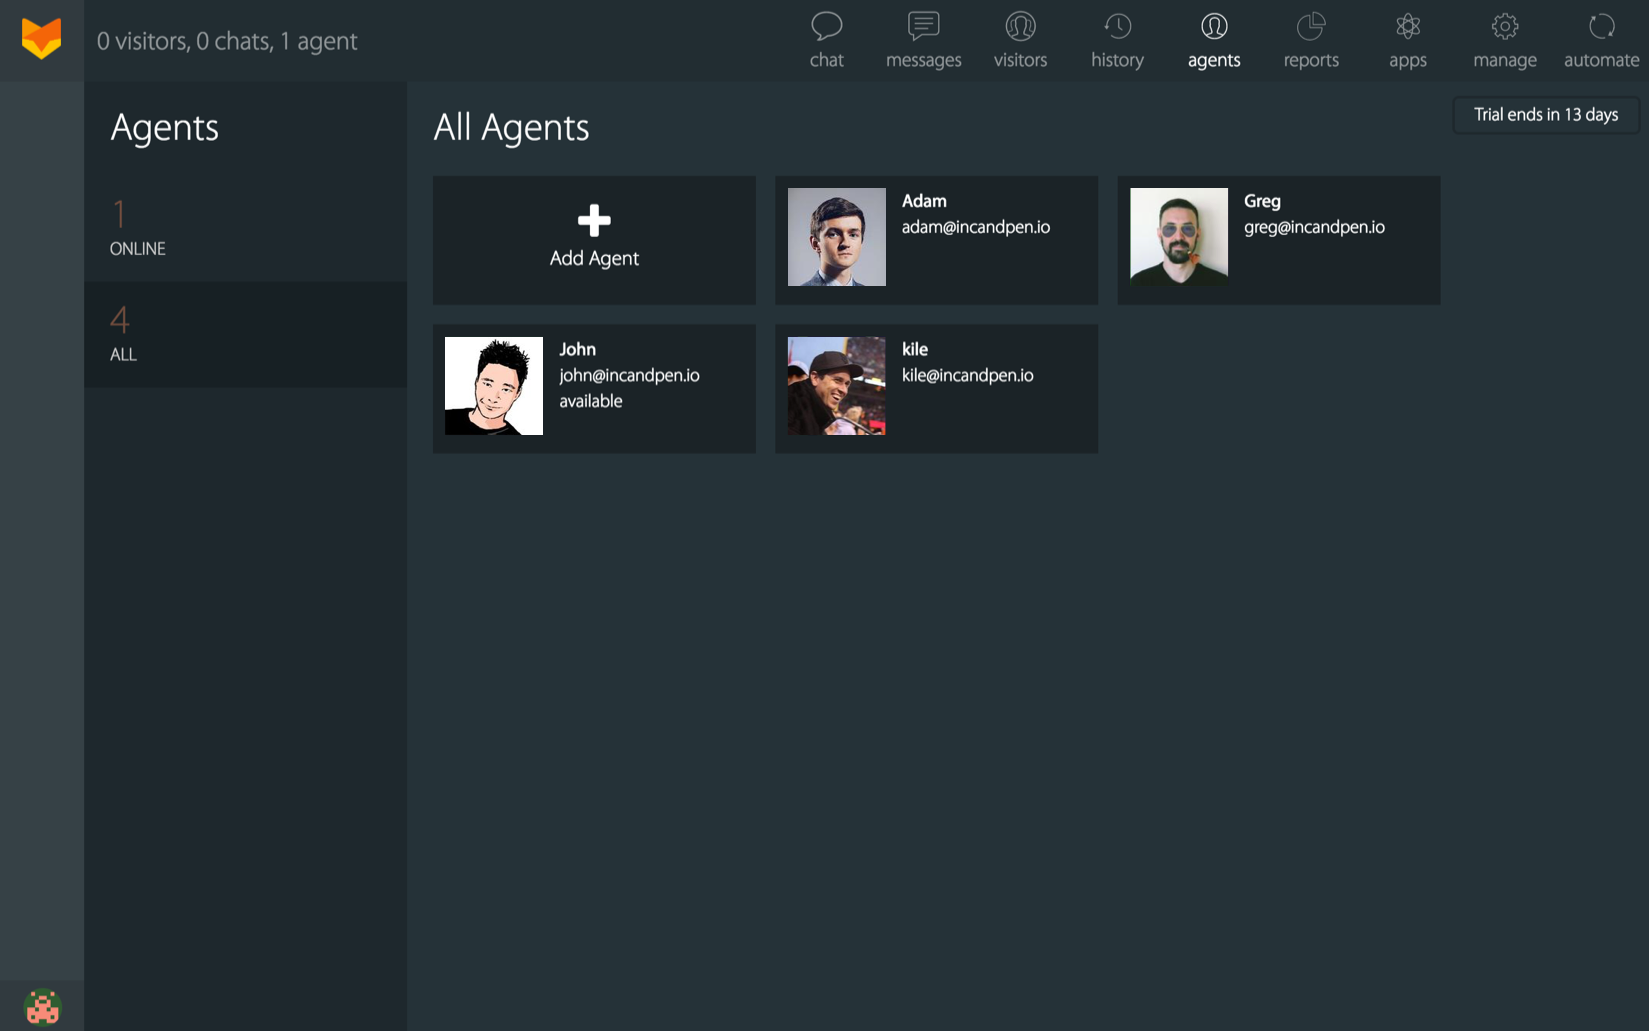 Manage agents from Okta